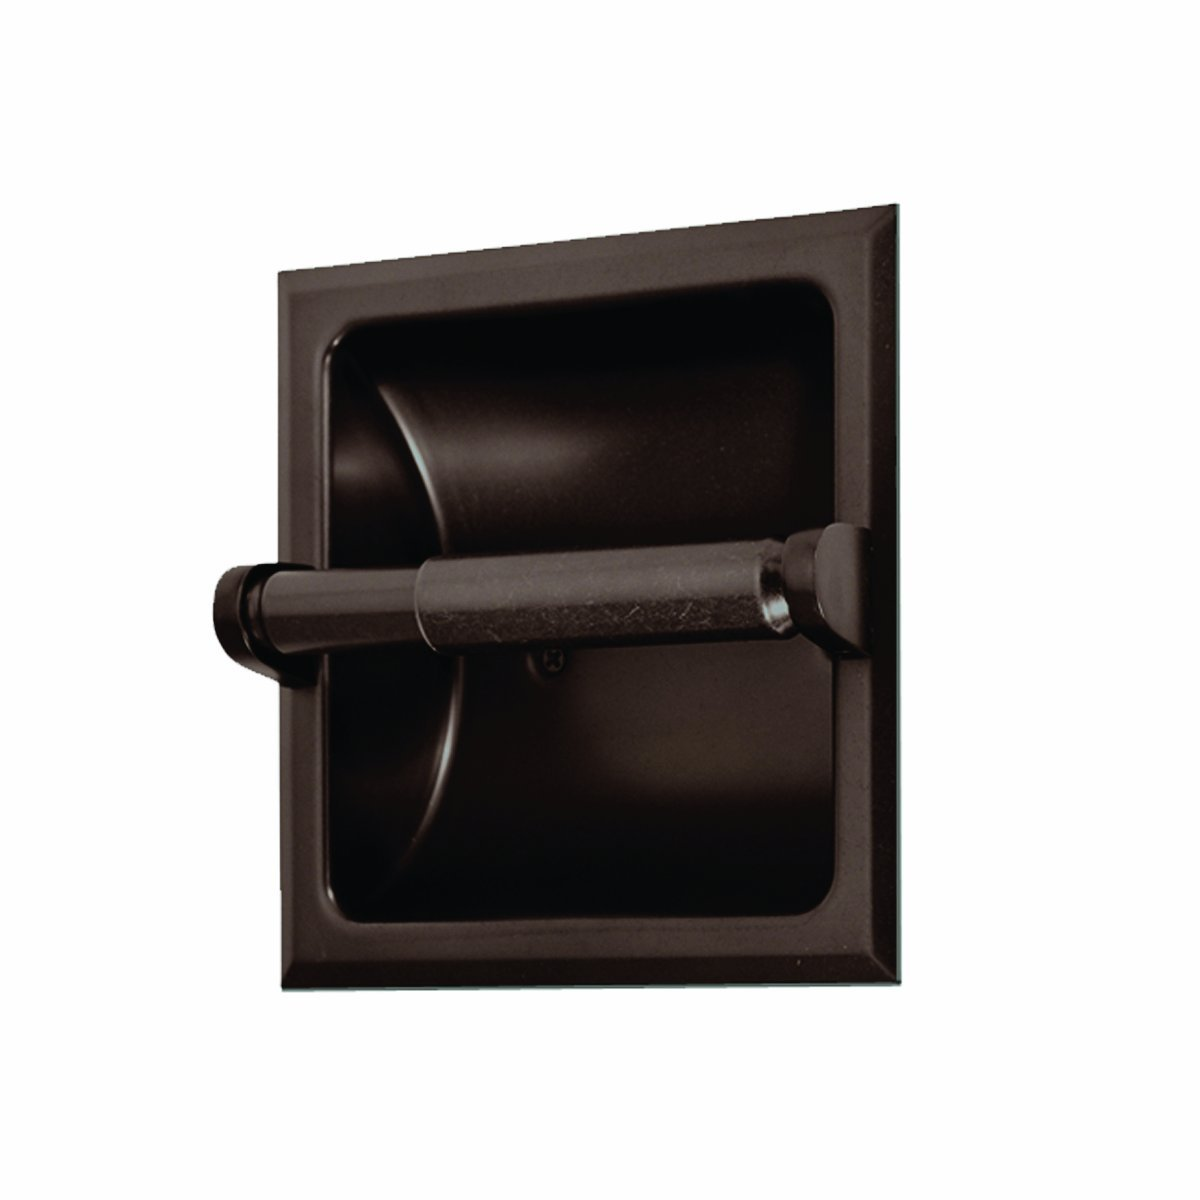 Gatco 784 Recessed Toilet Paper Holder, Burnished Bronze